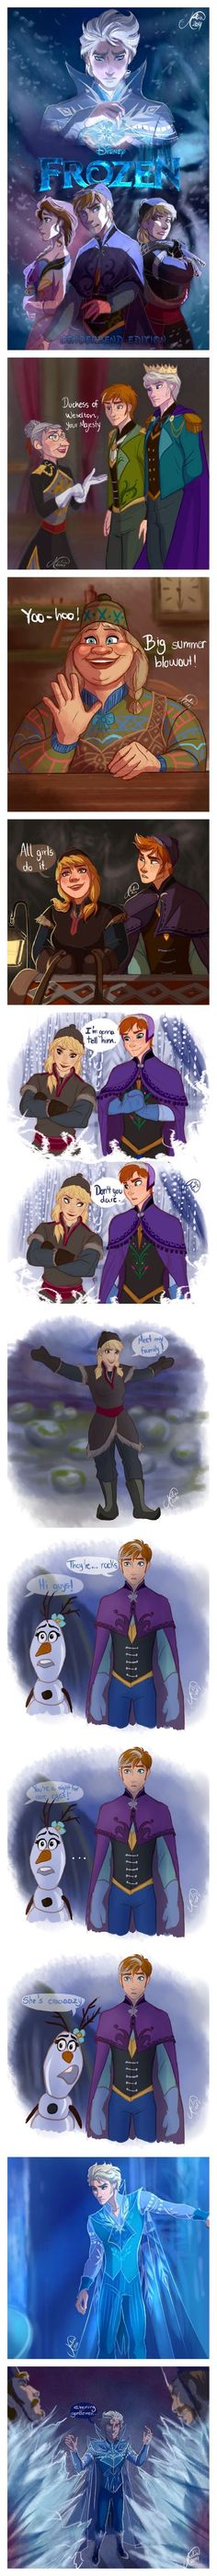 Holy floop the last bit wasn't in te movie it was in the original story board woah- elsa and anna frozen gender swap Disney Pixar, Walt Disney, Cute Disney, Disney And Dreamworks, Disney Magic, Disney Frozen, Disney Art, Funny Disney, Anna Frozen